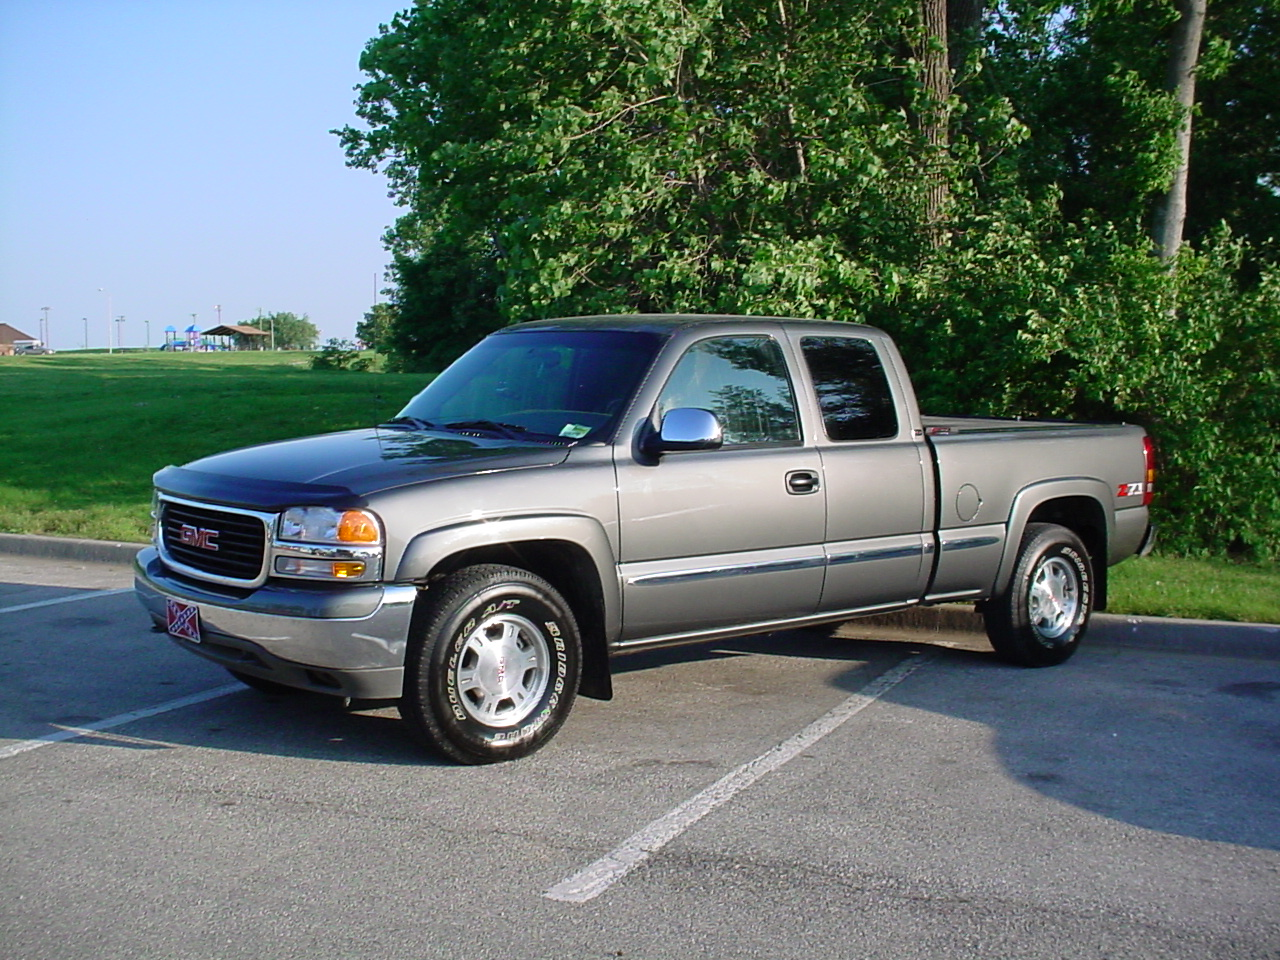 2001 gmc sierra 1500 information and photos zombiedrive. Black Bedroom Furniture Sets. Home Design Ideas